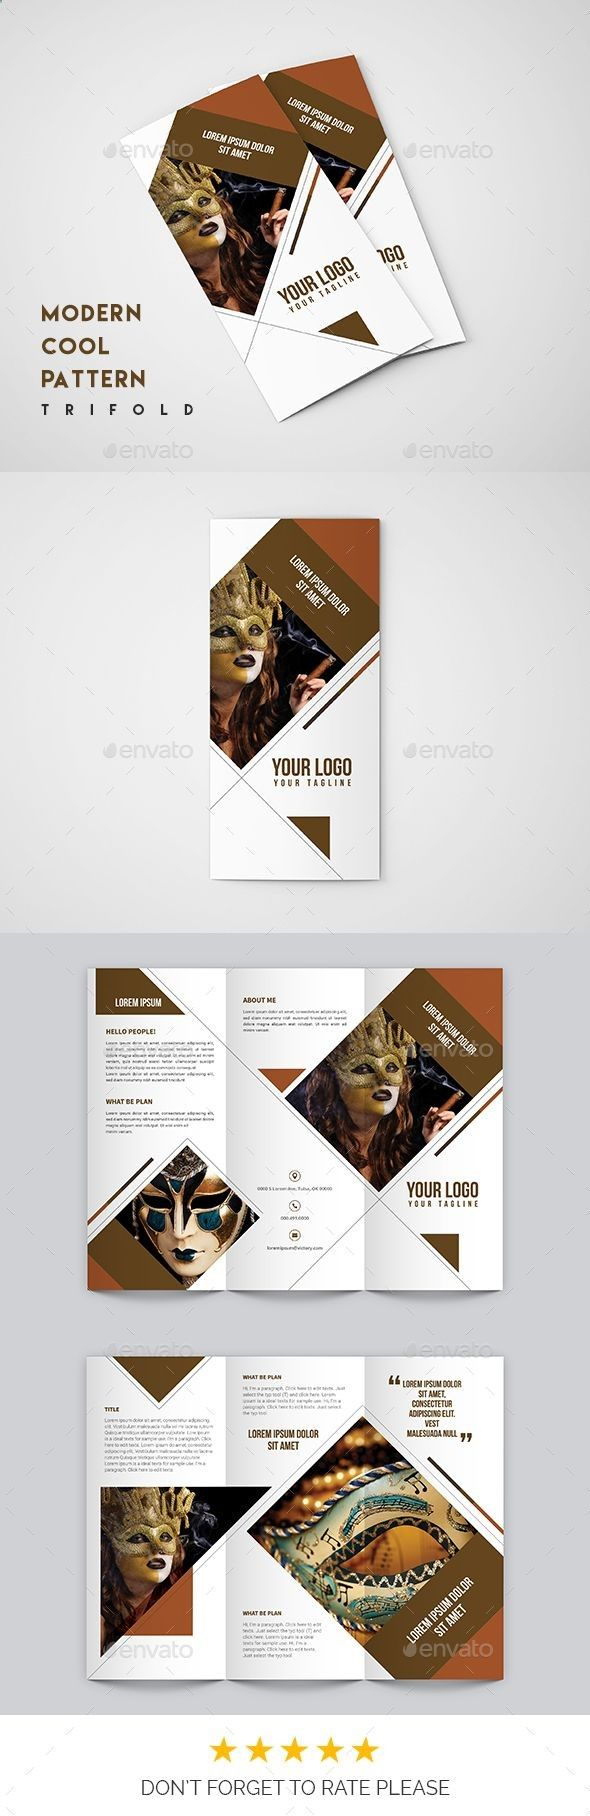 15 best top pharmacy brochure design templates images on pinterest morden modern cool pattern trifold brochure design template catalogs brochures design template psd download pronofoot35fo Images